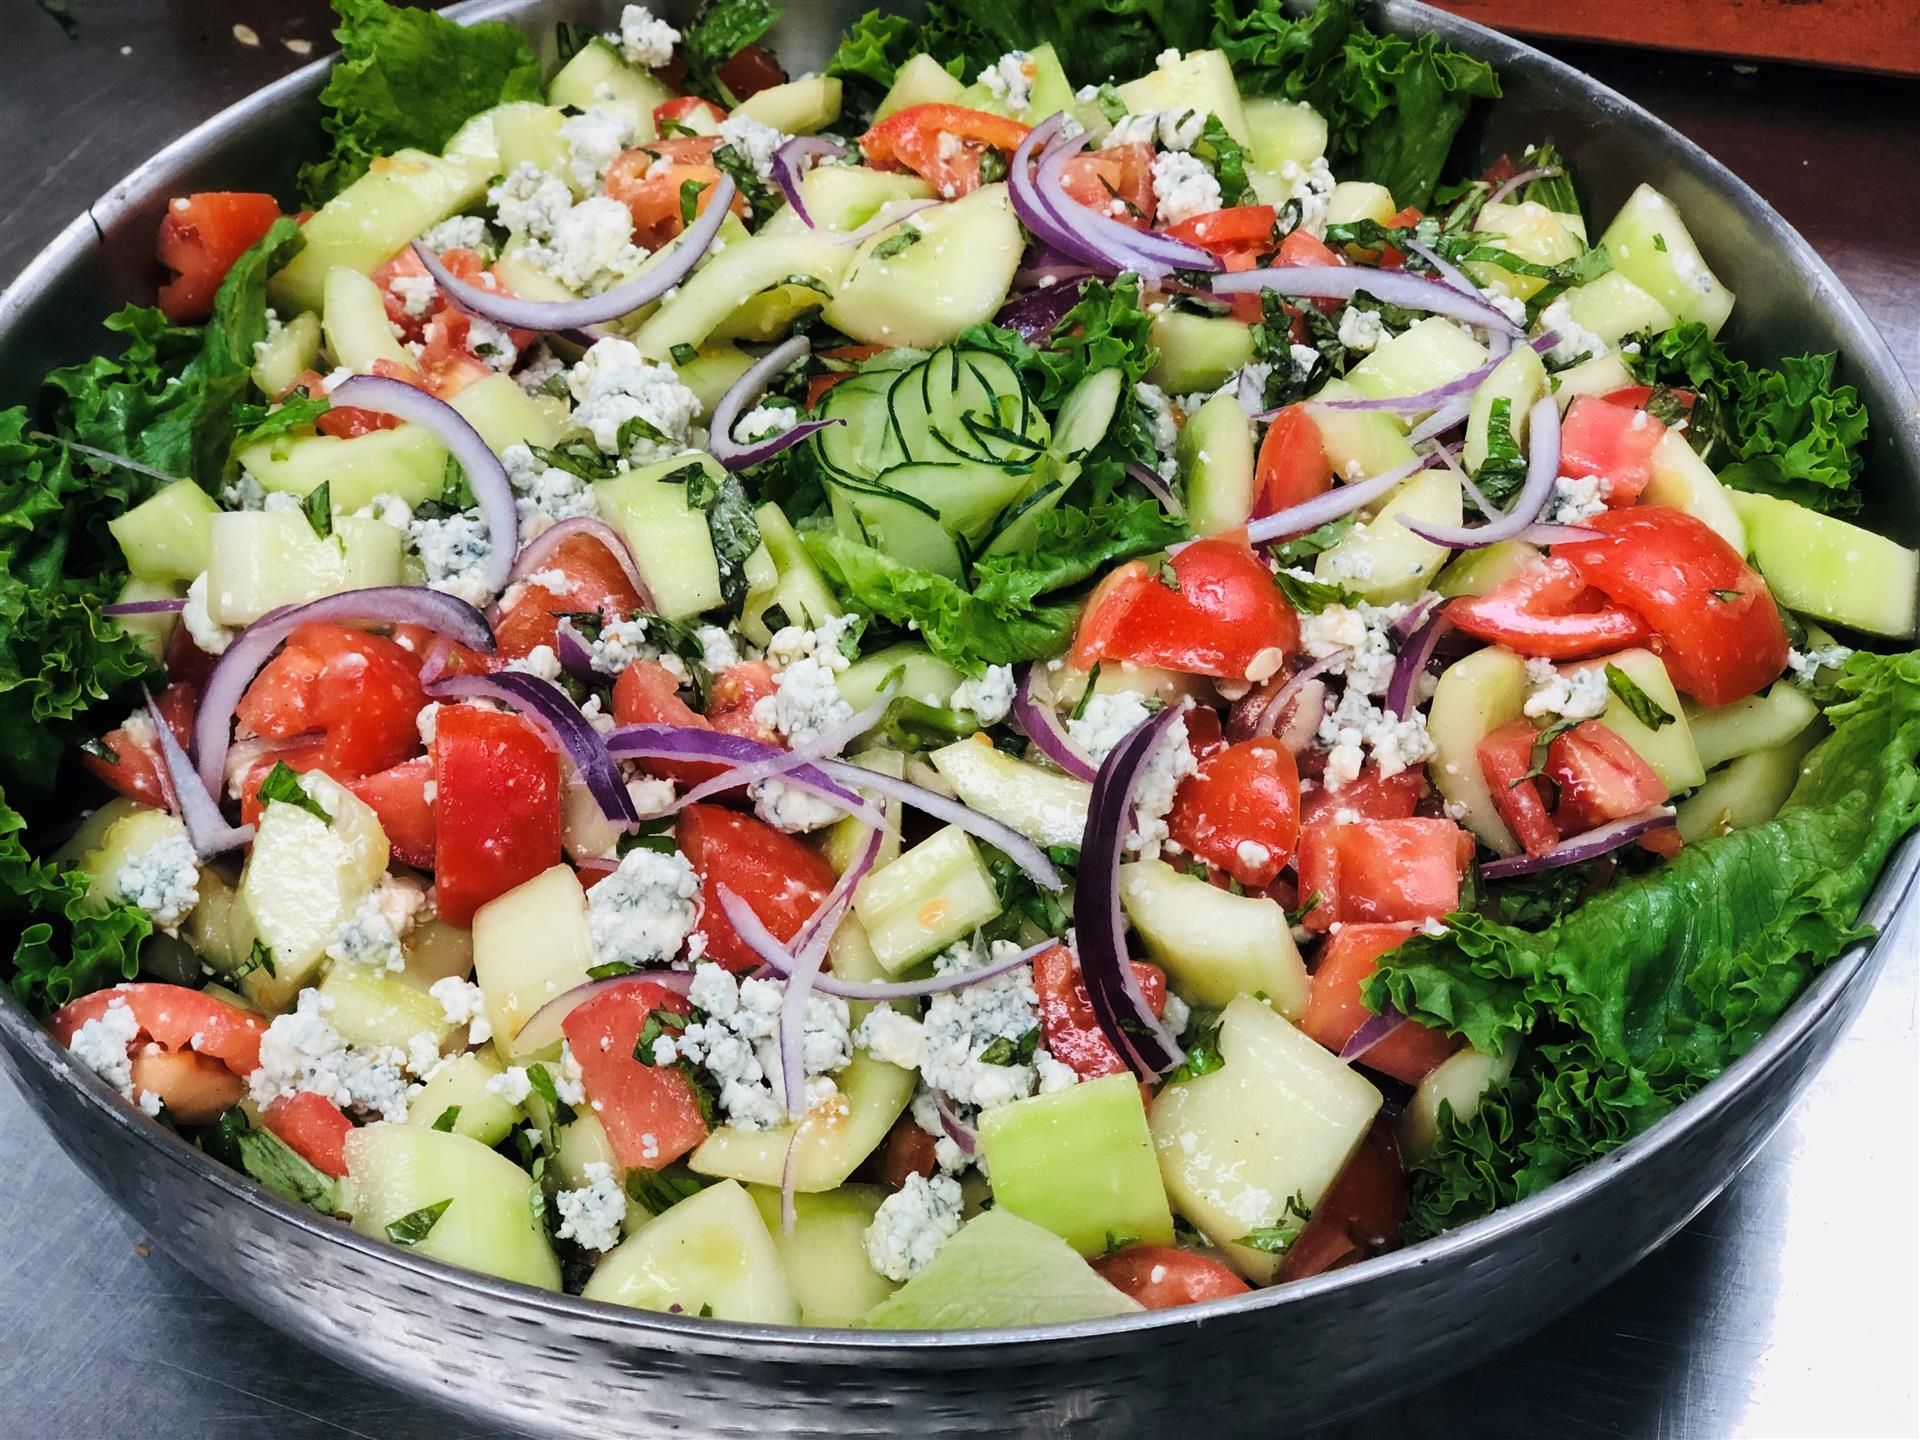 salad with cucumber, red onion, tomato and blue cheese